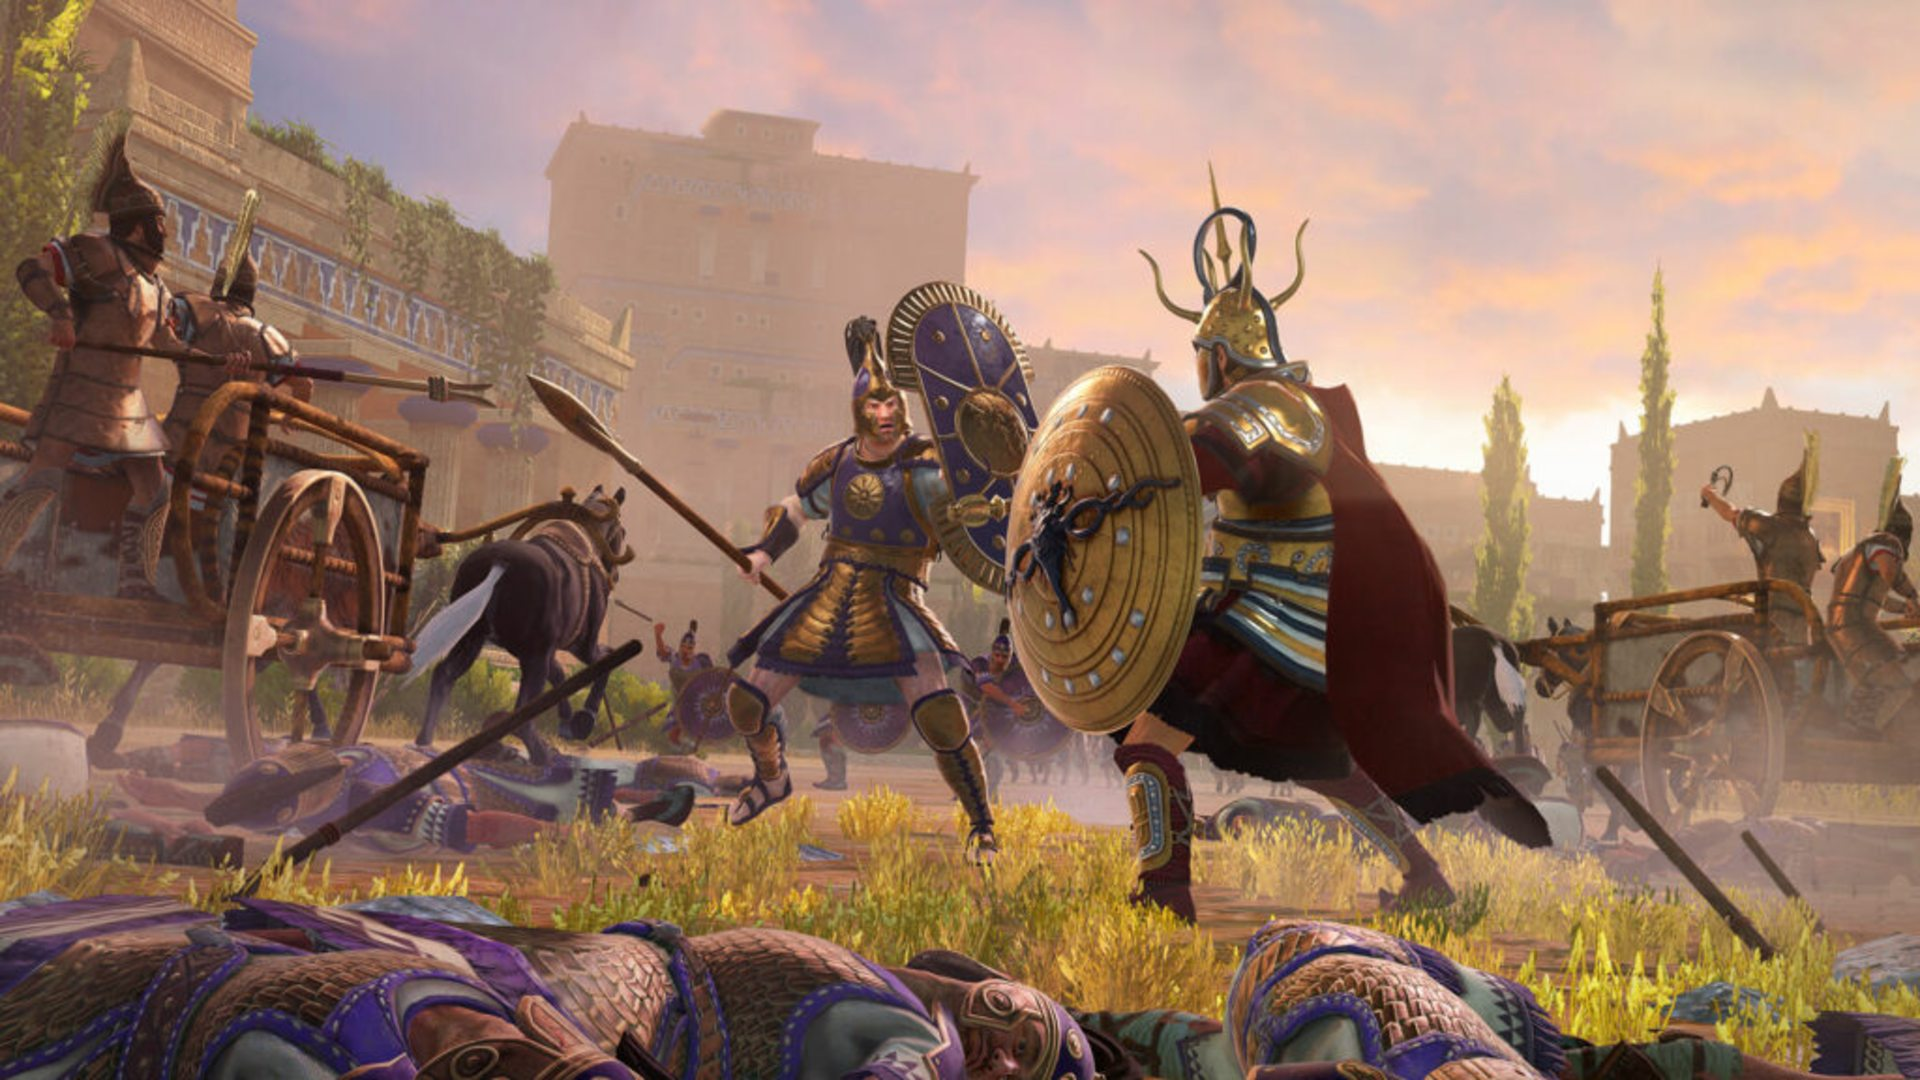 Total War Saga: Troy's multiplayer beta is getting quick battles and chat